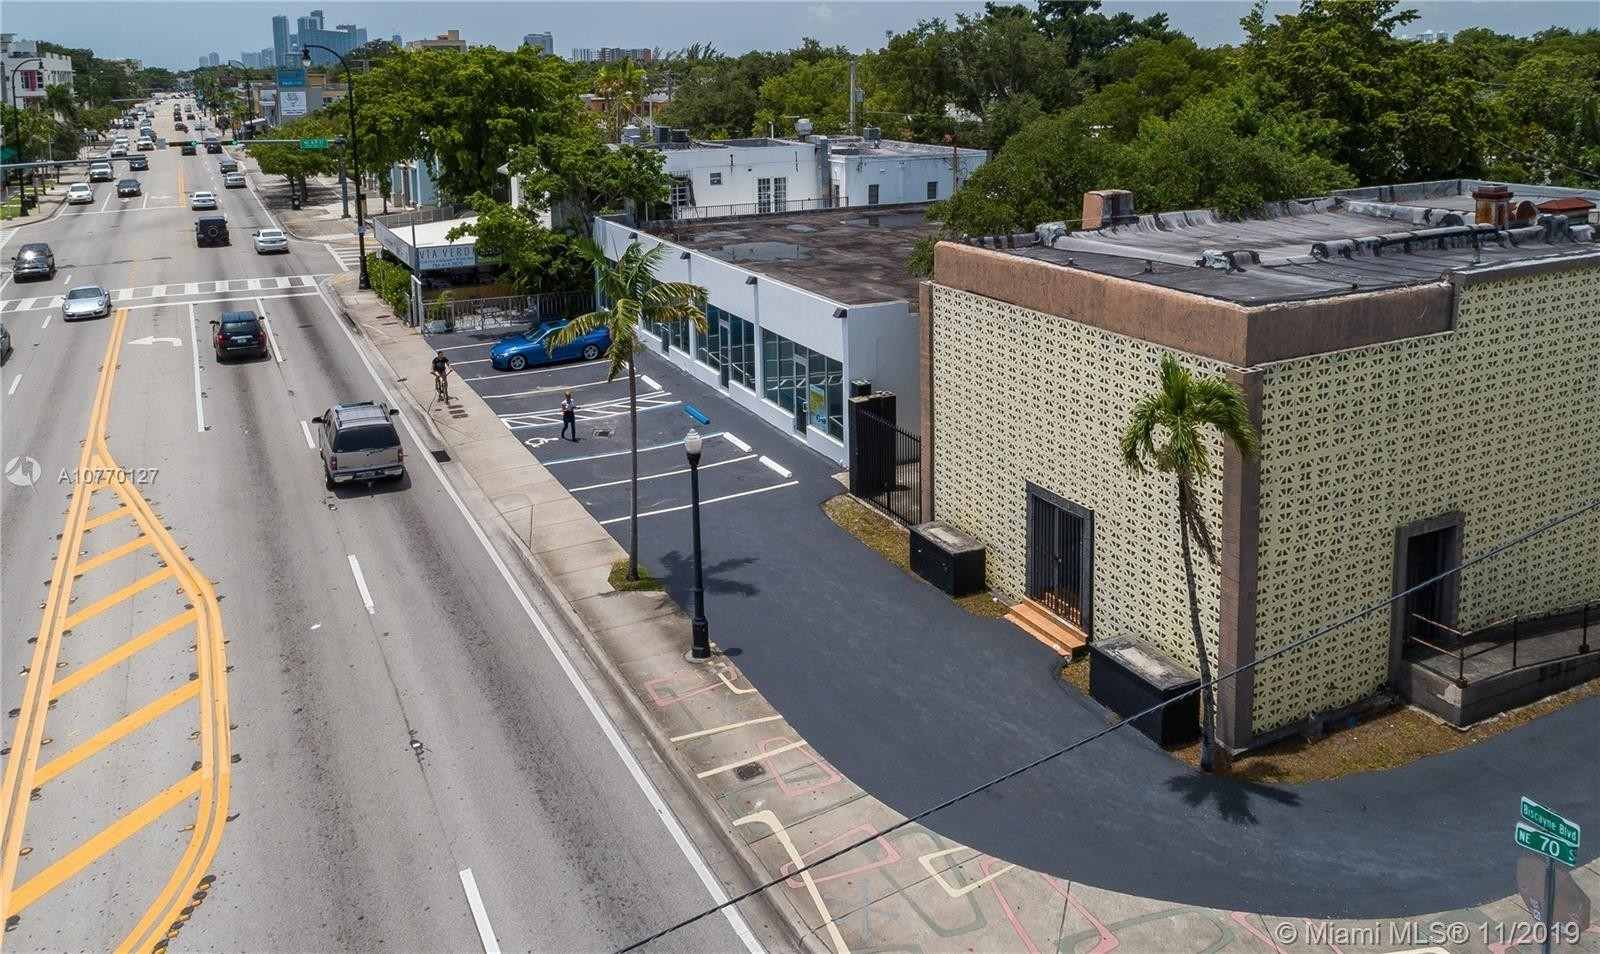 Commercial / Office for Sale at Bayside, Miami, FL 33138